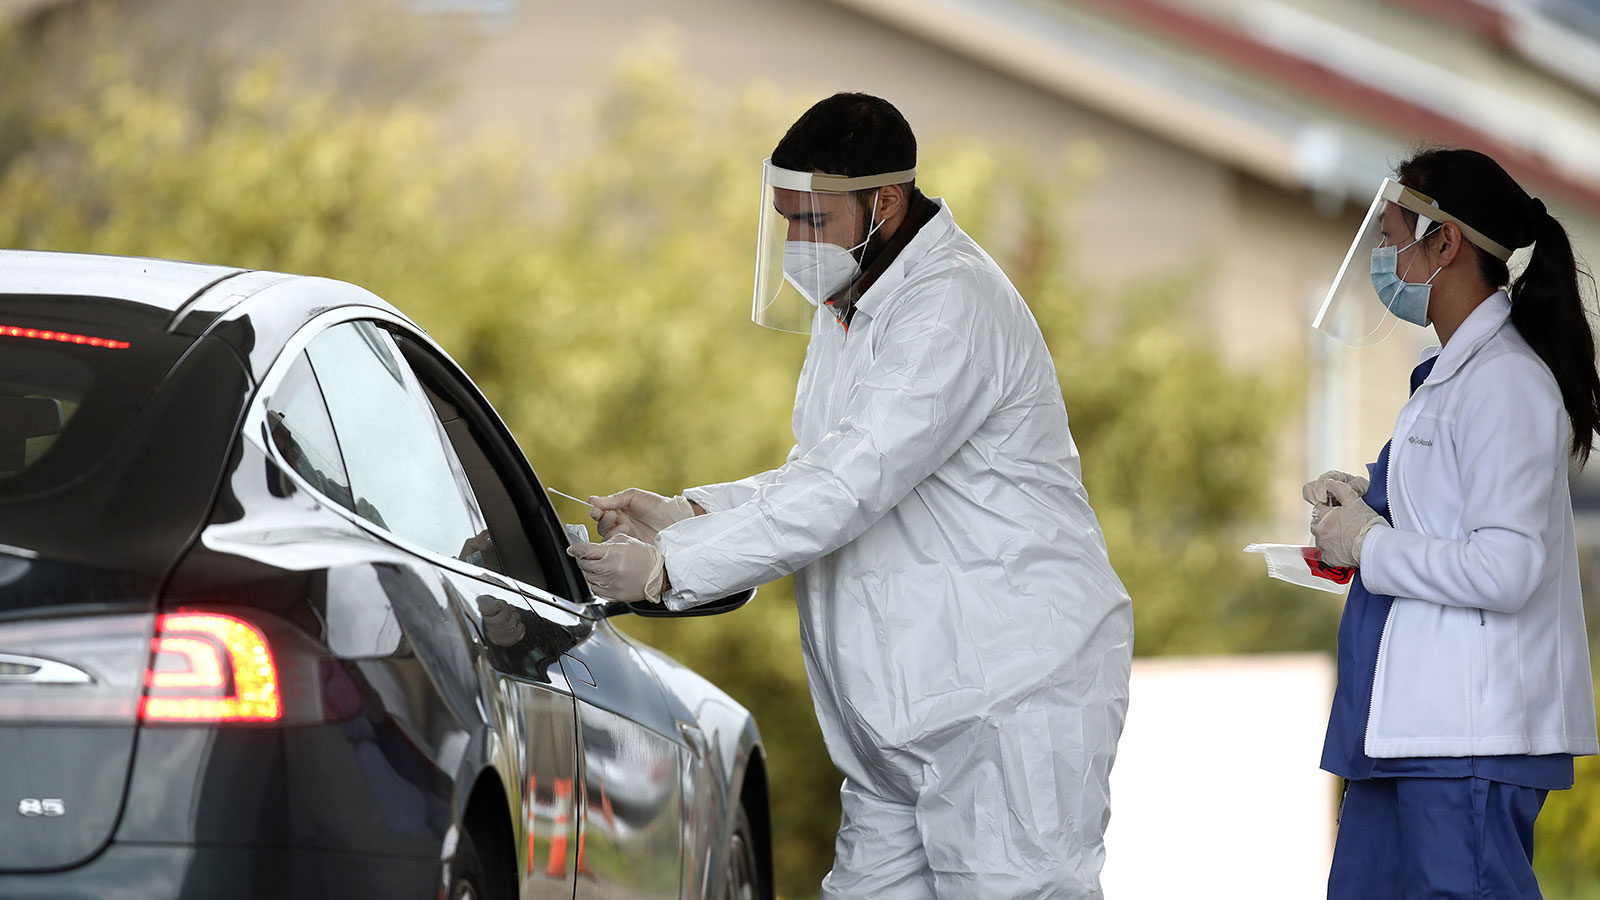 A medical professional administers a coronavirus test at a drive-through testing location in Bolinas, California on April 20.